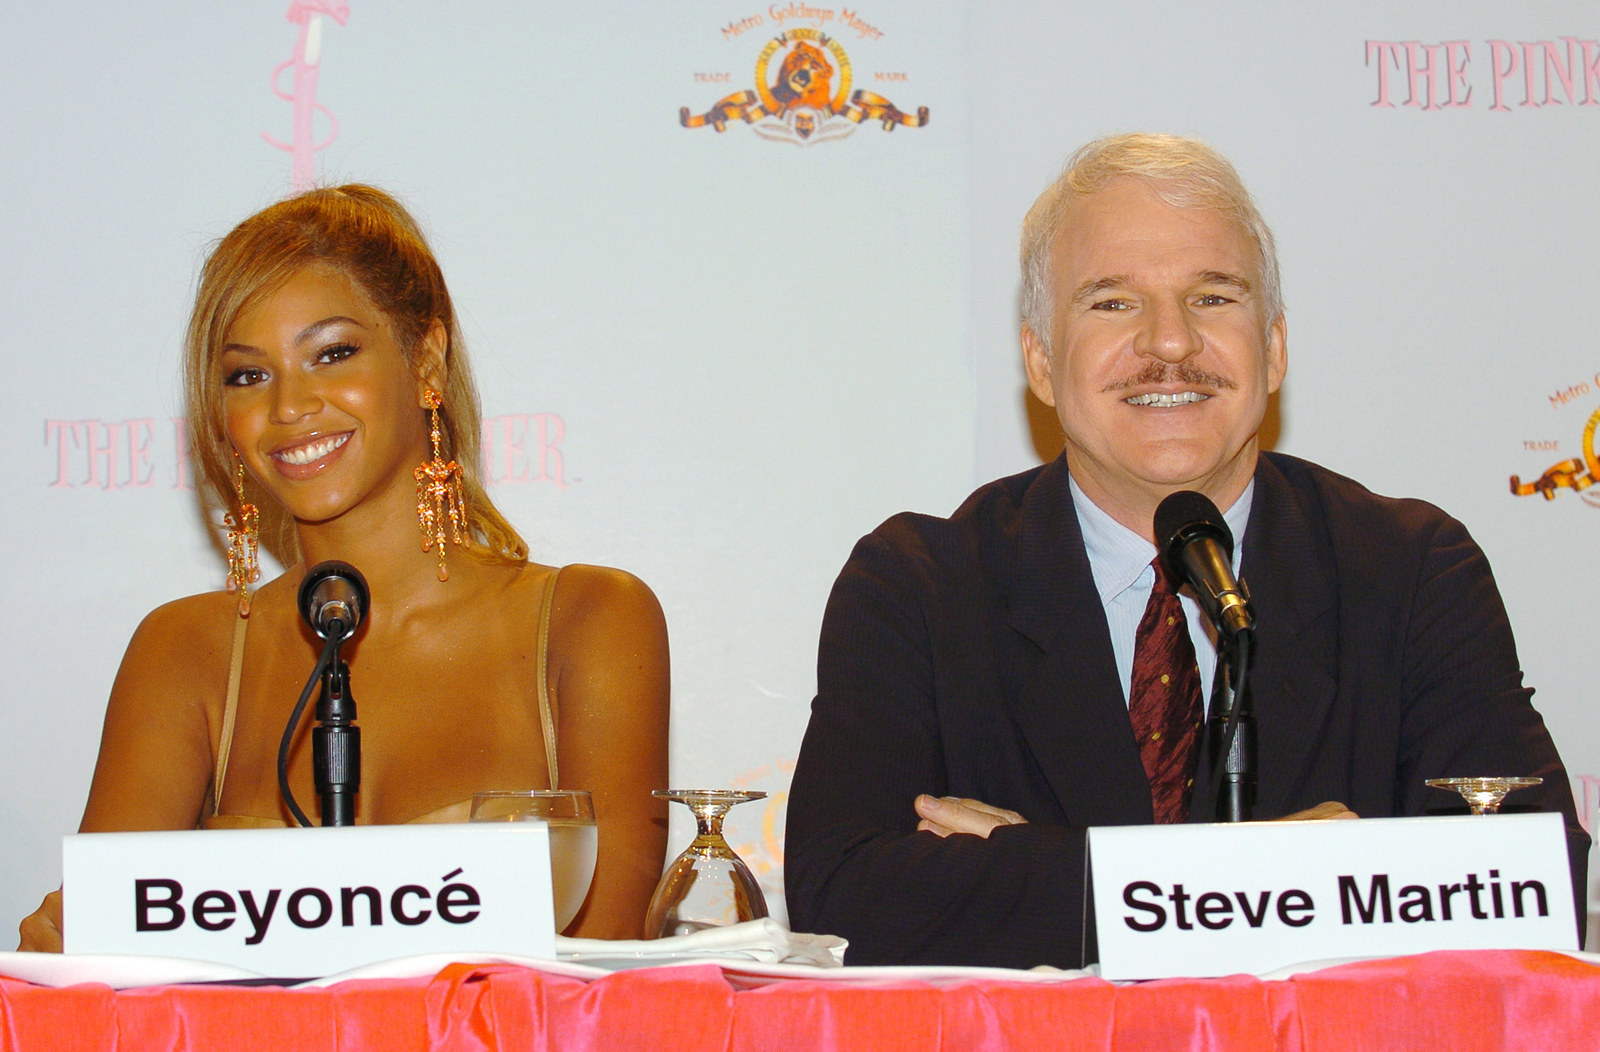 On a panel with Steve Martin.